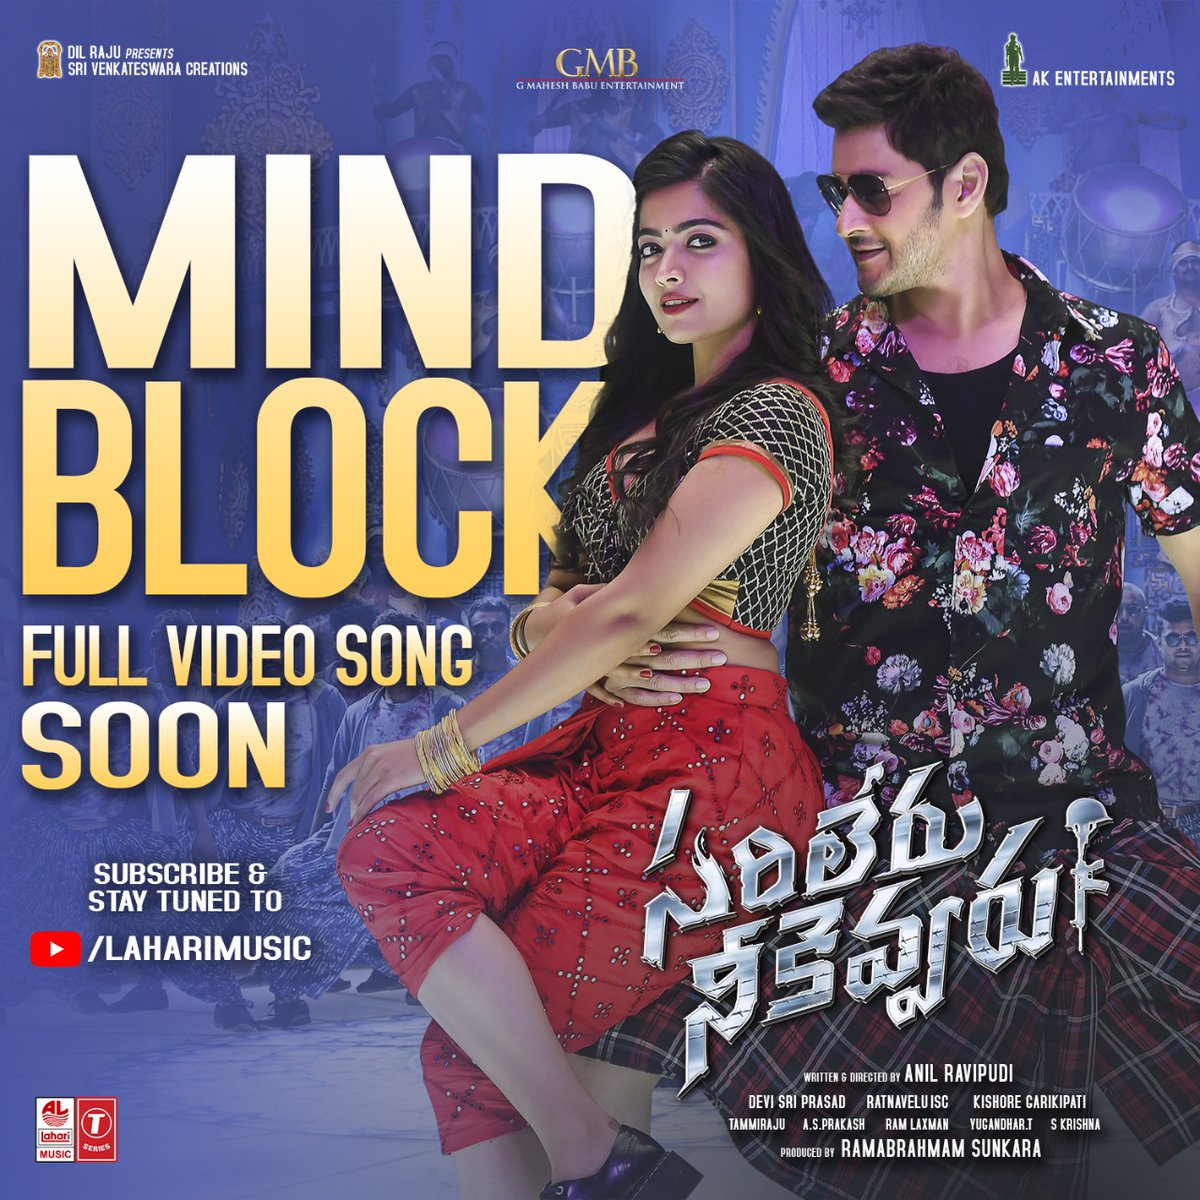 The most awaited and favourite #MindBlock full video song will be Released soon!!😍💃🕺 #SarileruNeekevvaru  @urstrulyMahesh